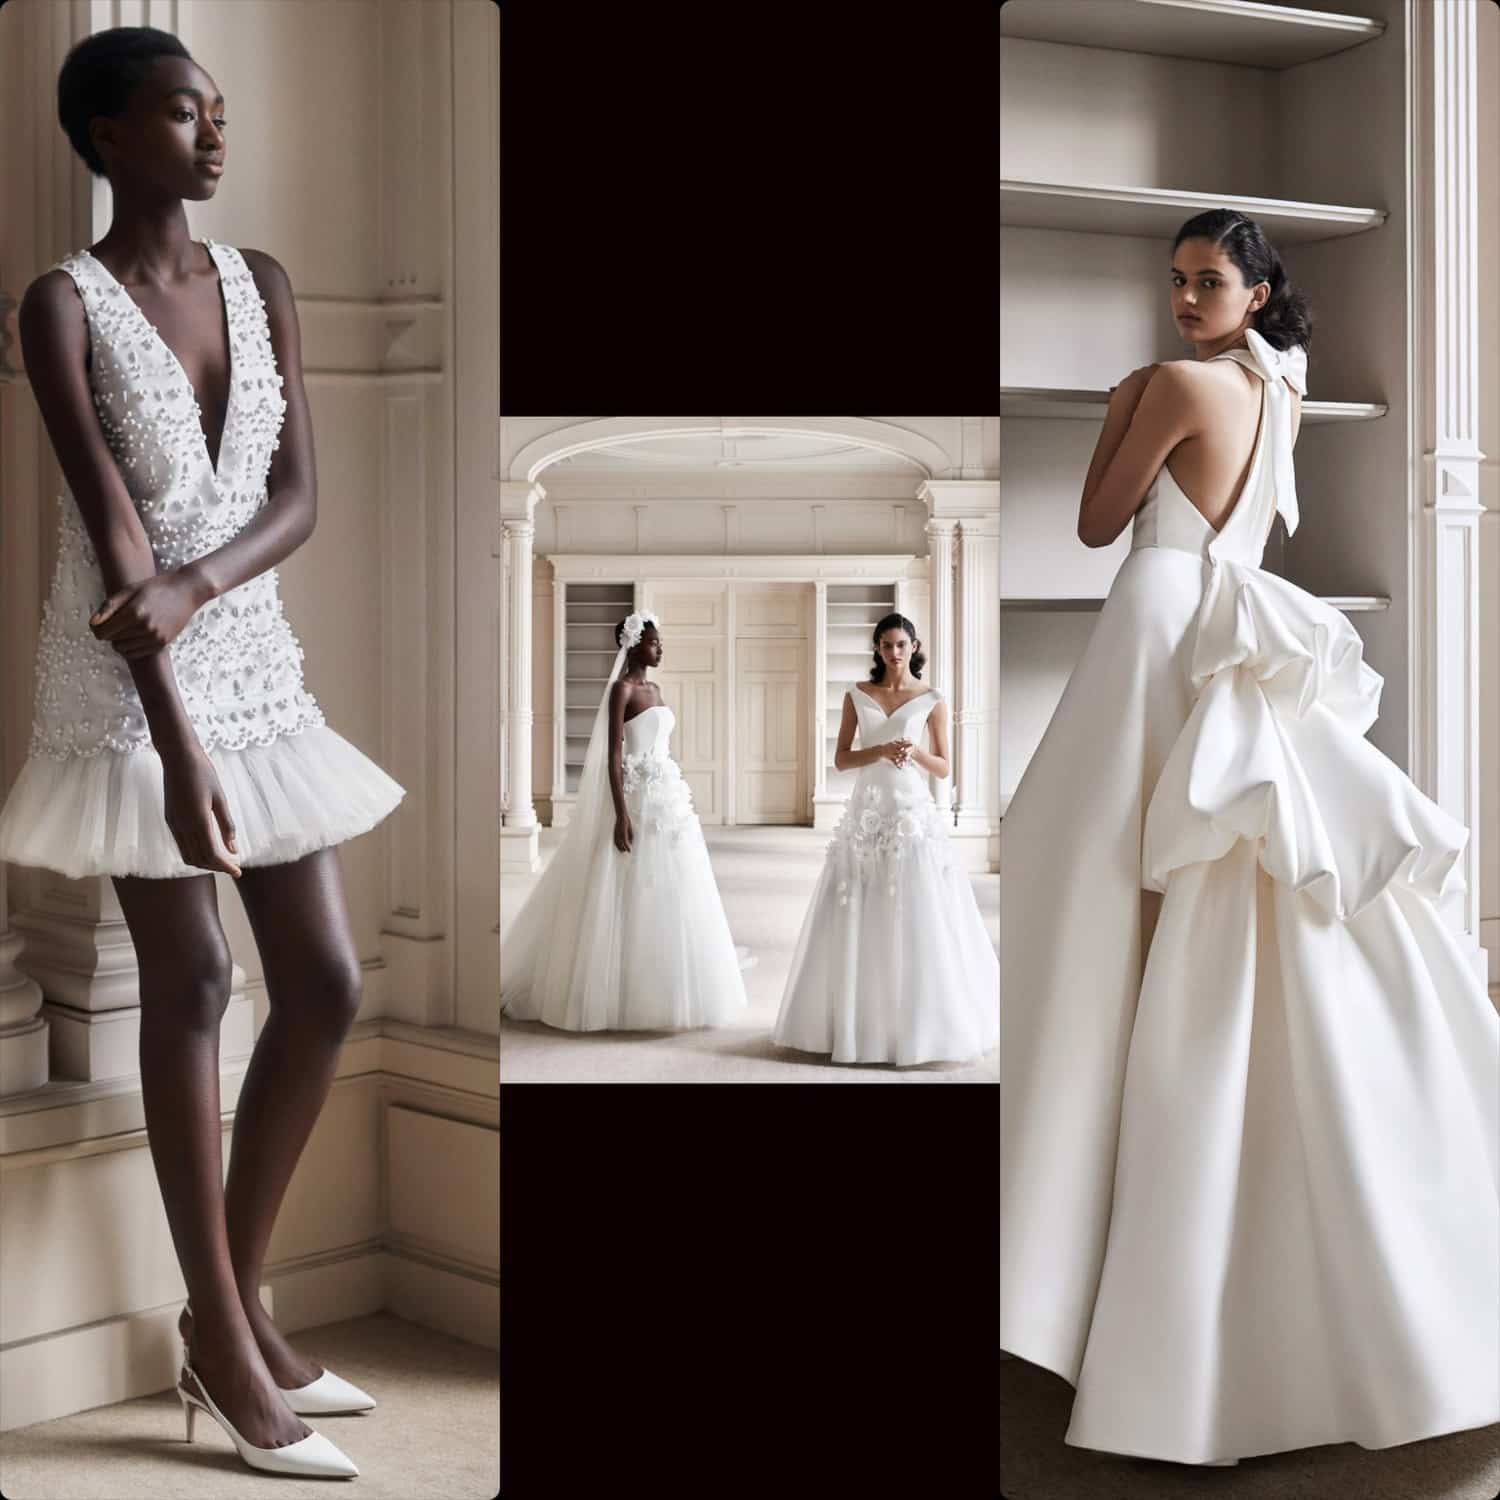 Viktor&Rolf Bridal Spring Summer 2021 New York. RUNWAY MAGAZINE ® Collections. RUNWAY NOW / RUNWAY NEW